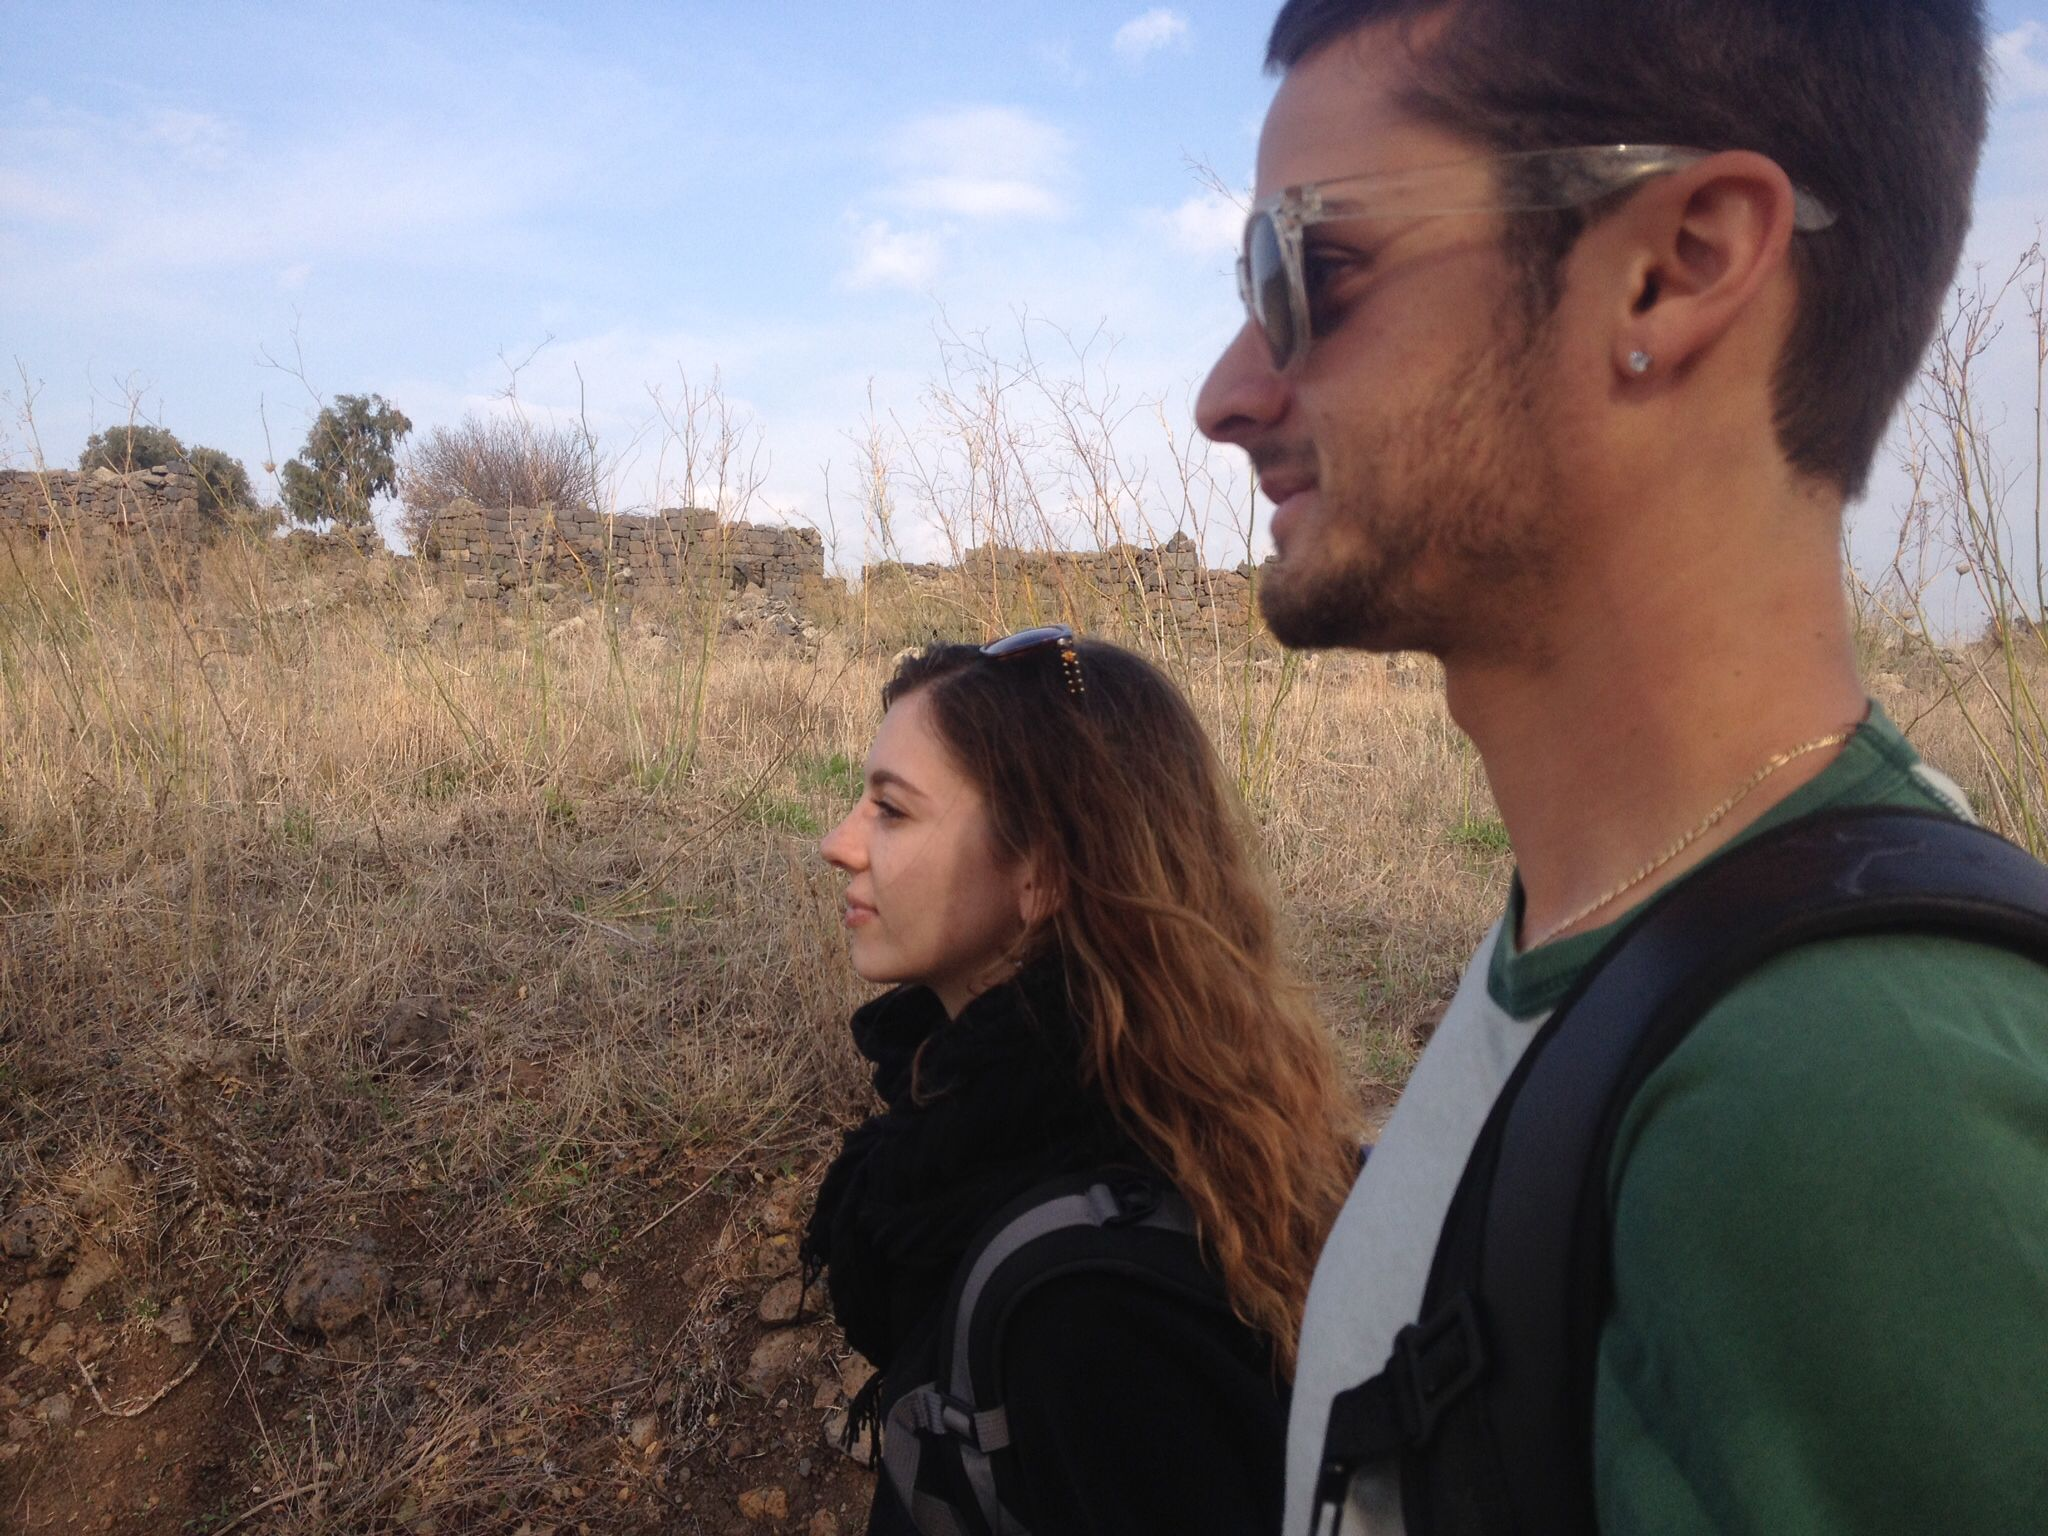 Friends on birthright in the Golan Heights